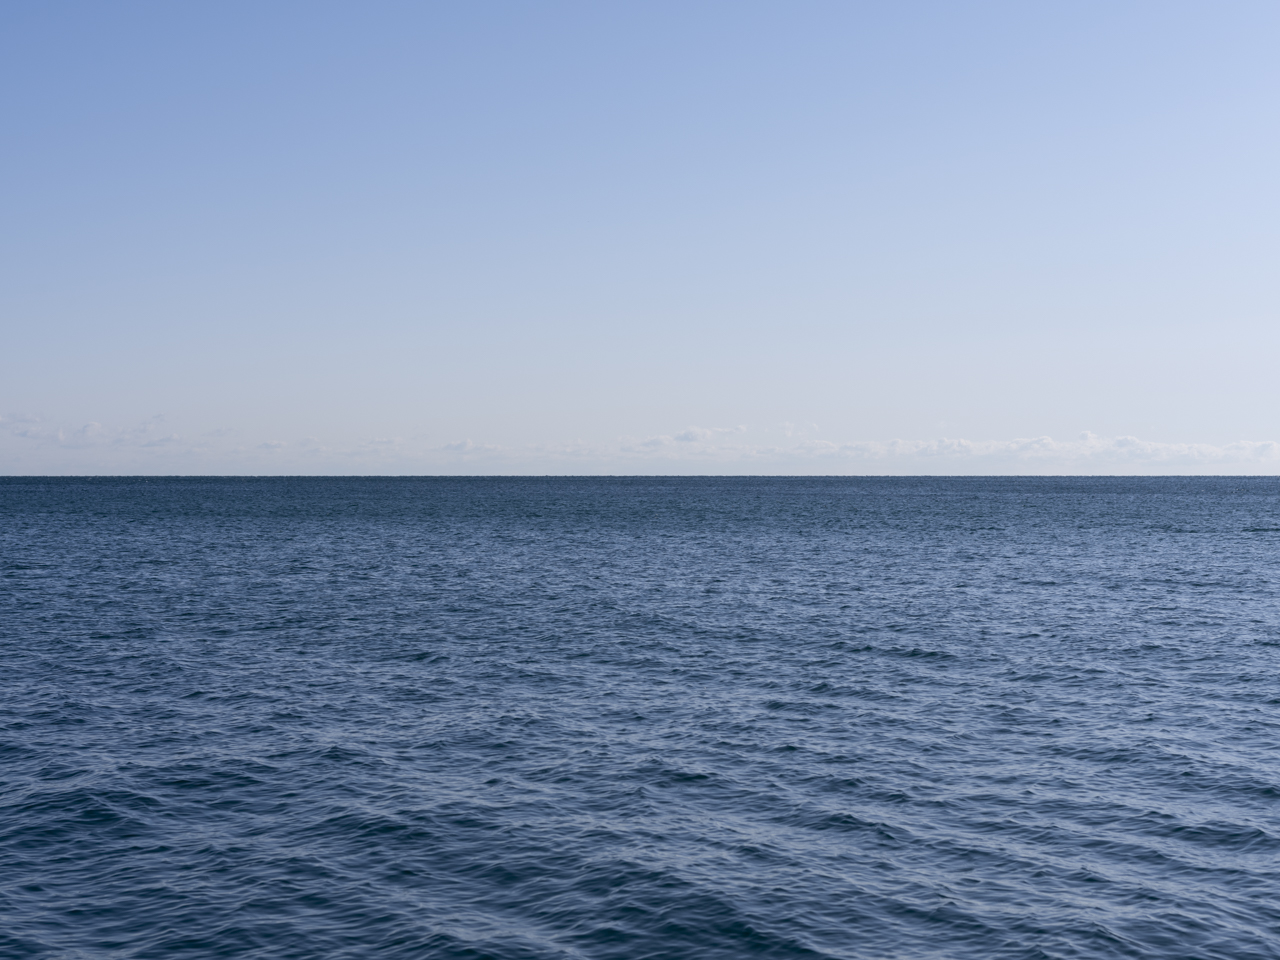 Lake Michigan with a clear sky and rippling water